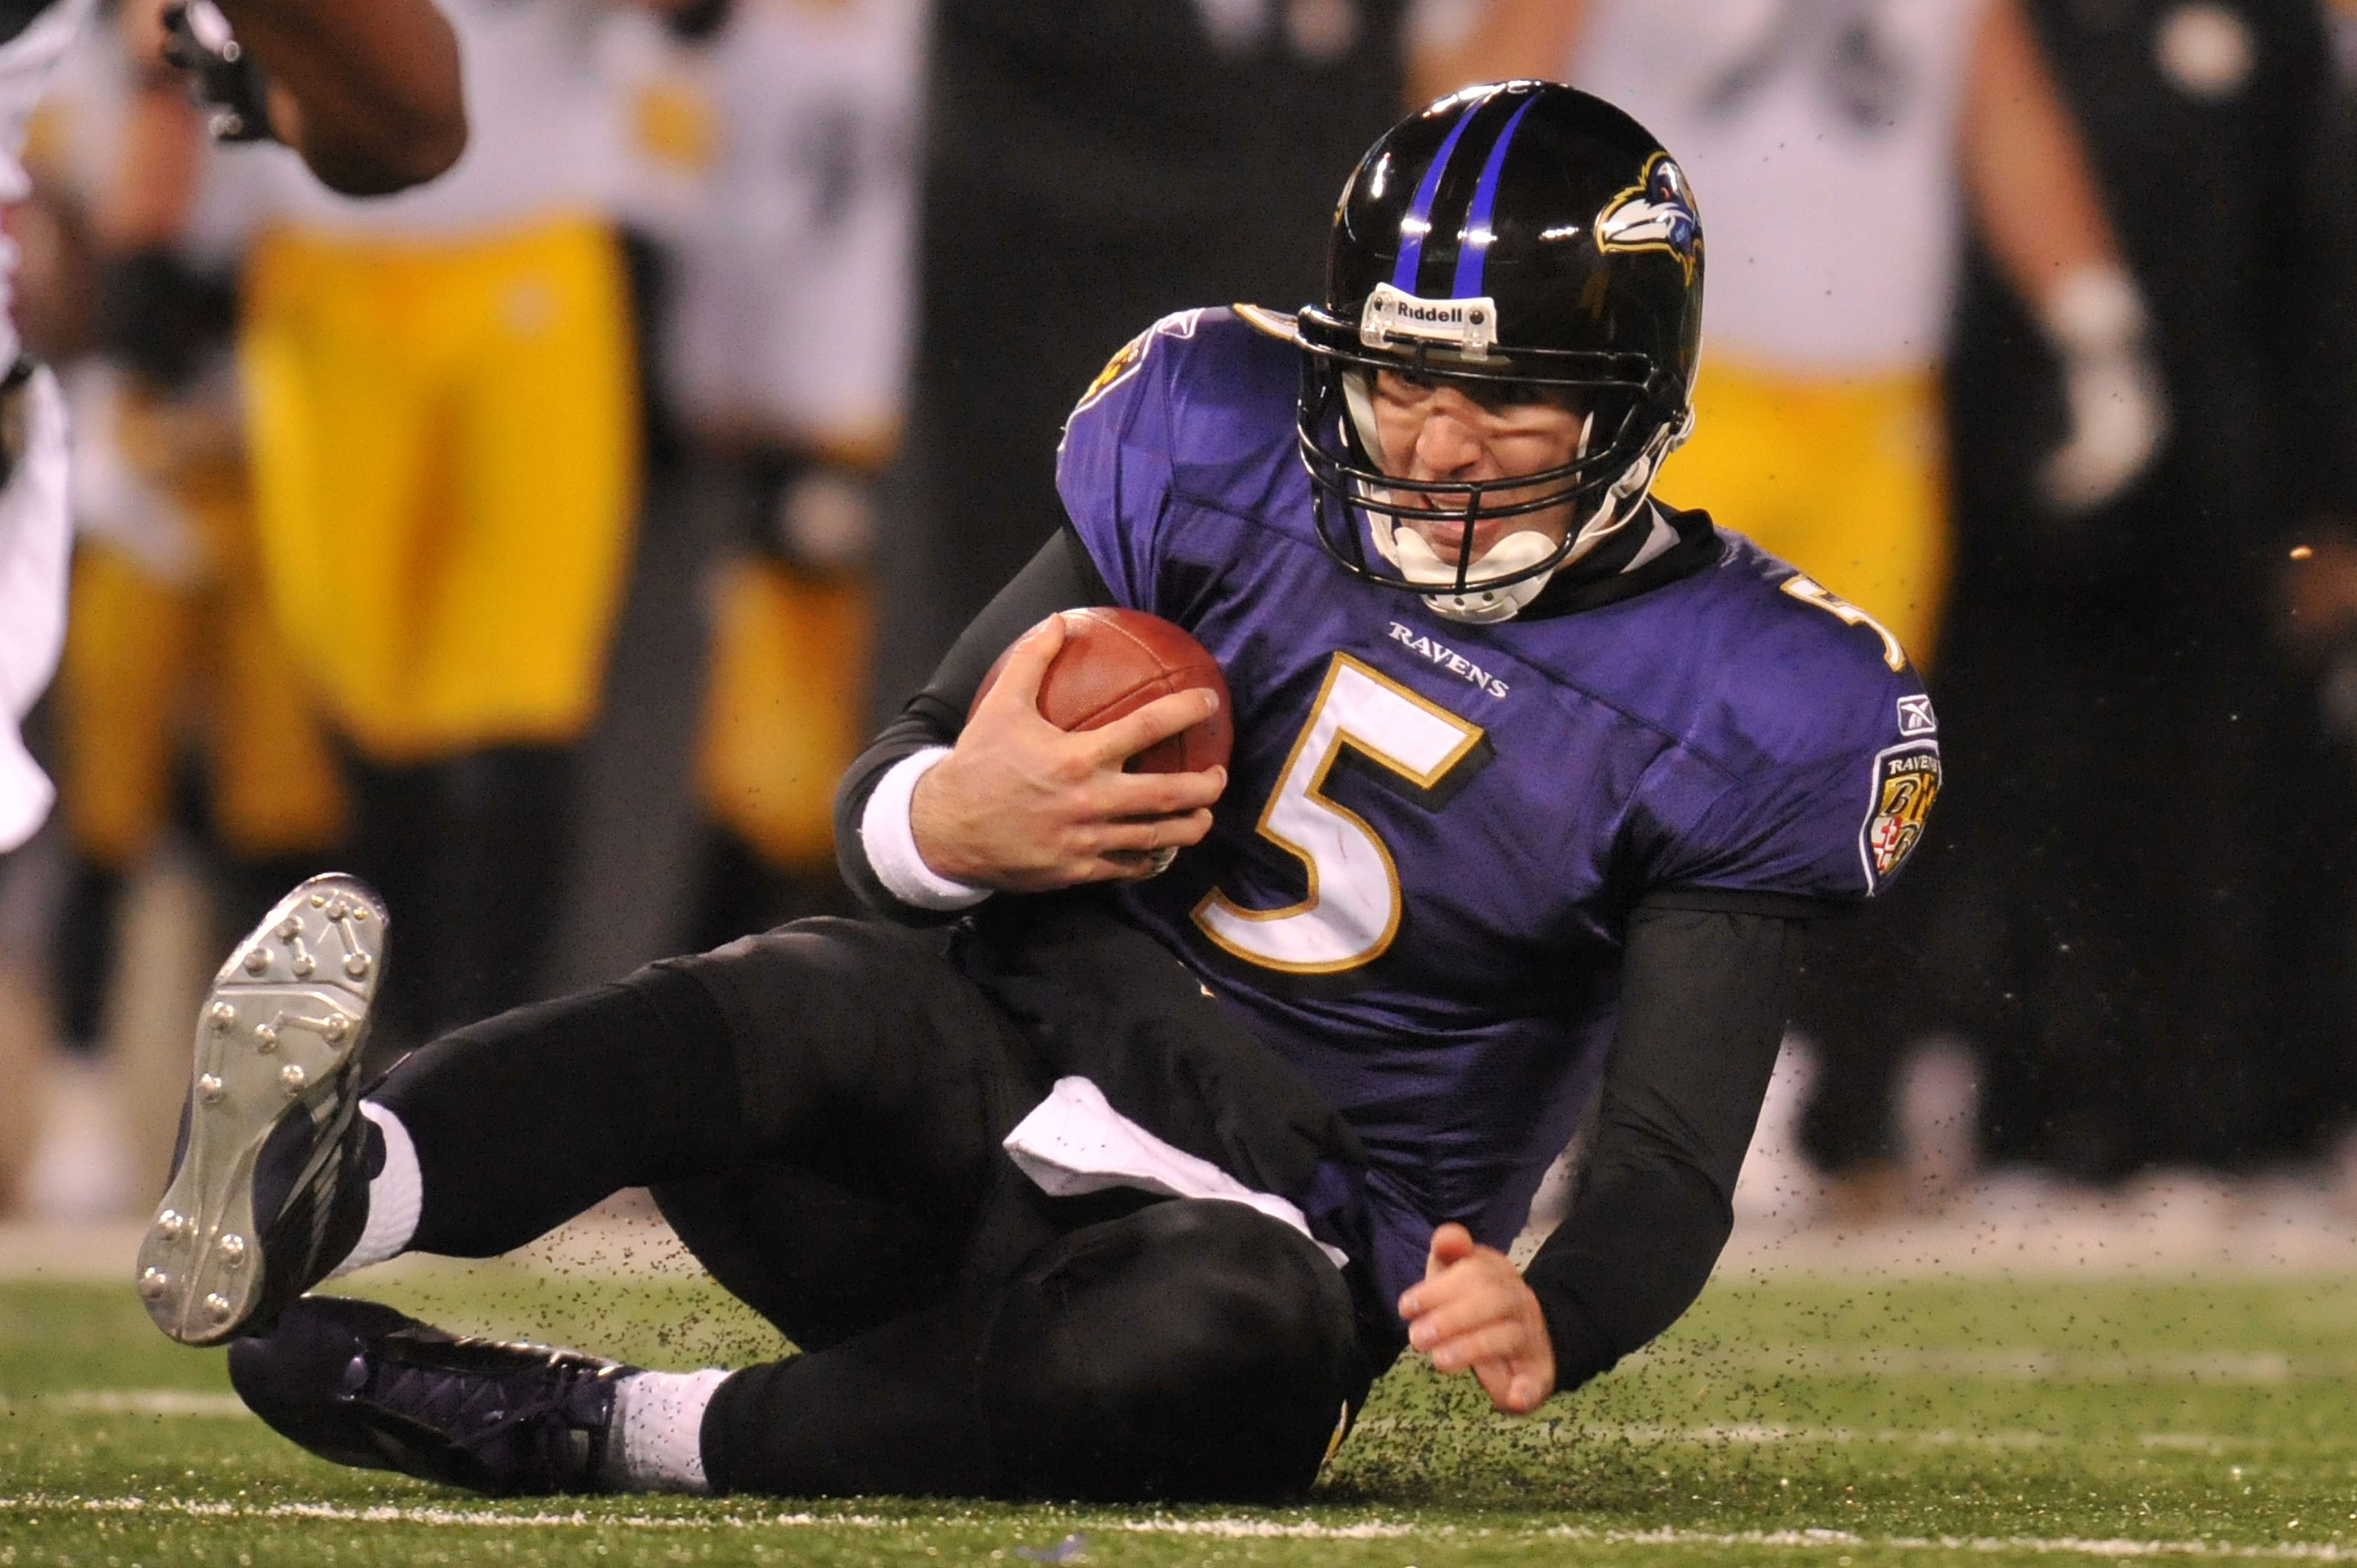 BALTIMORE, MD - DECEMBER 05:  Quarterback Joe Flacco #5 of the Baltimore Ravens lands on the ground during the game against the Pittsburgh Steelers at M&T Bank Stadium on December 5, 2010 in Baltimore, Maryland. Pittsburgh won 13-10.  (Photo by Larry Fren